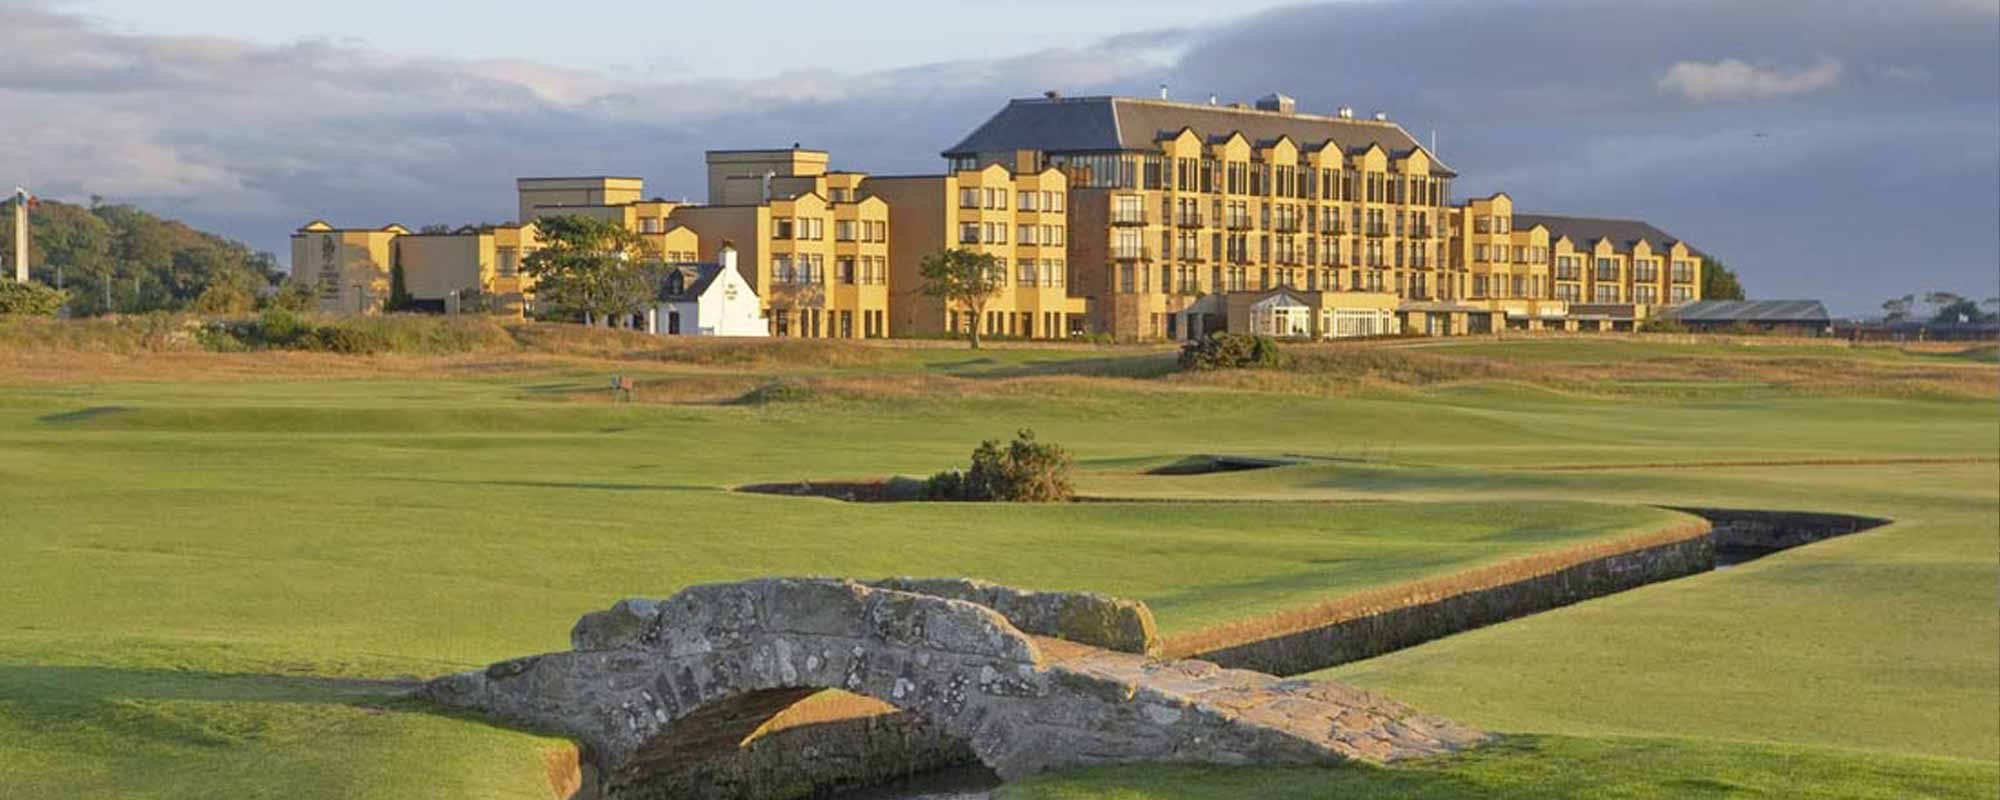 Portada-Old-Course-Hotel-St.-Andrews-The-Open-2022